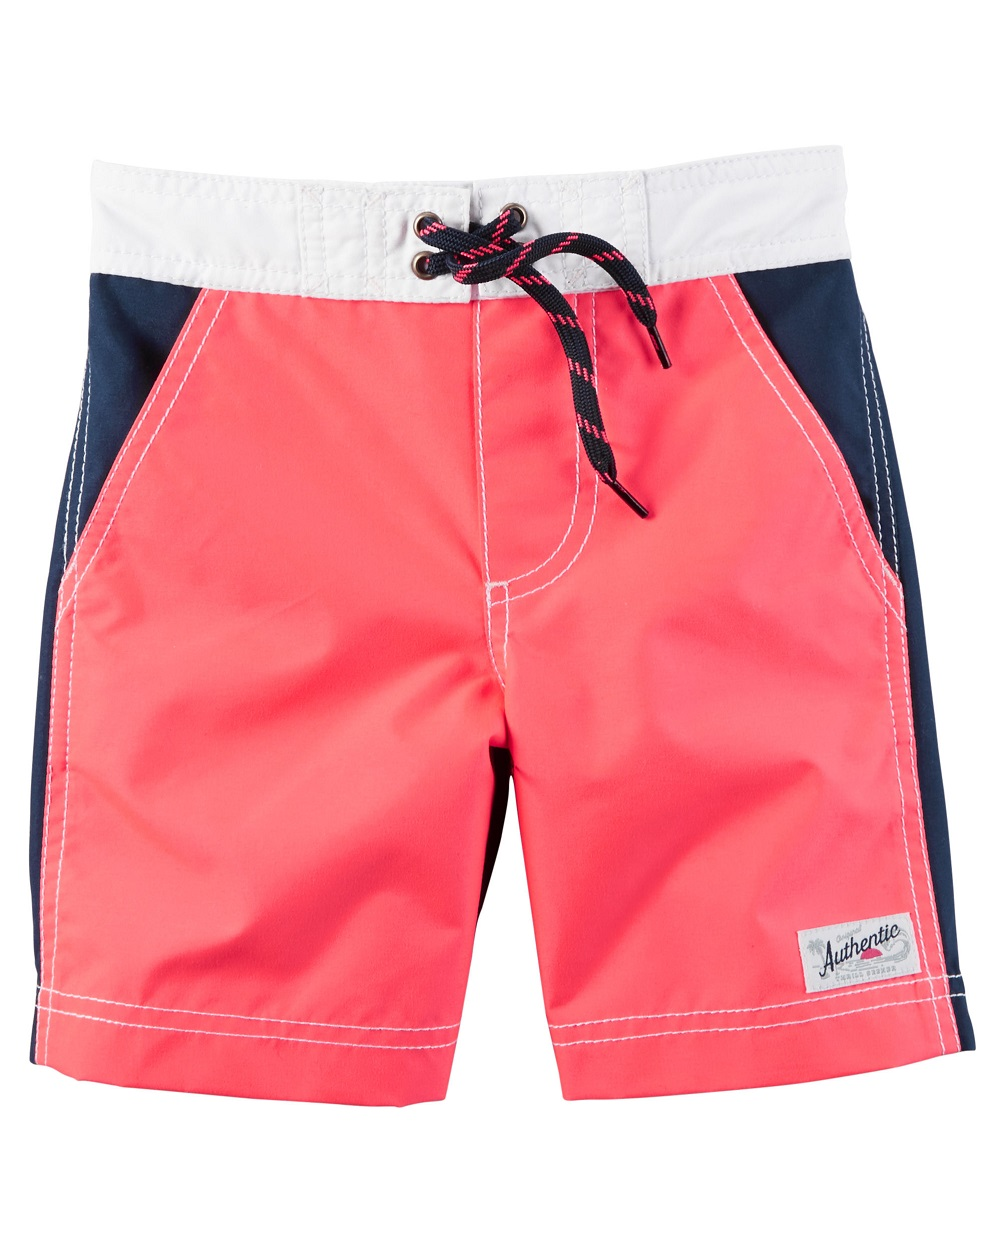 Carter's Baby Boys' Swim Trunks, 18 Months